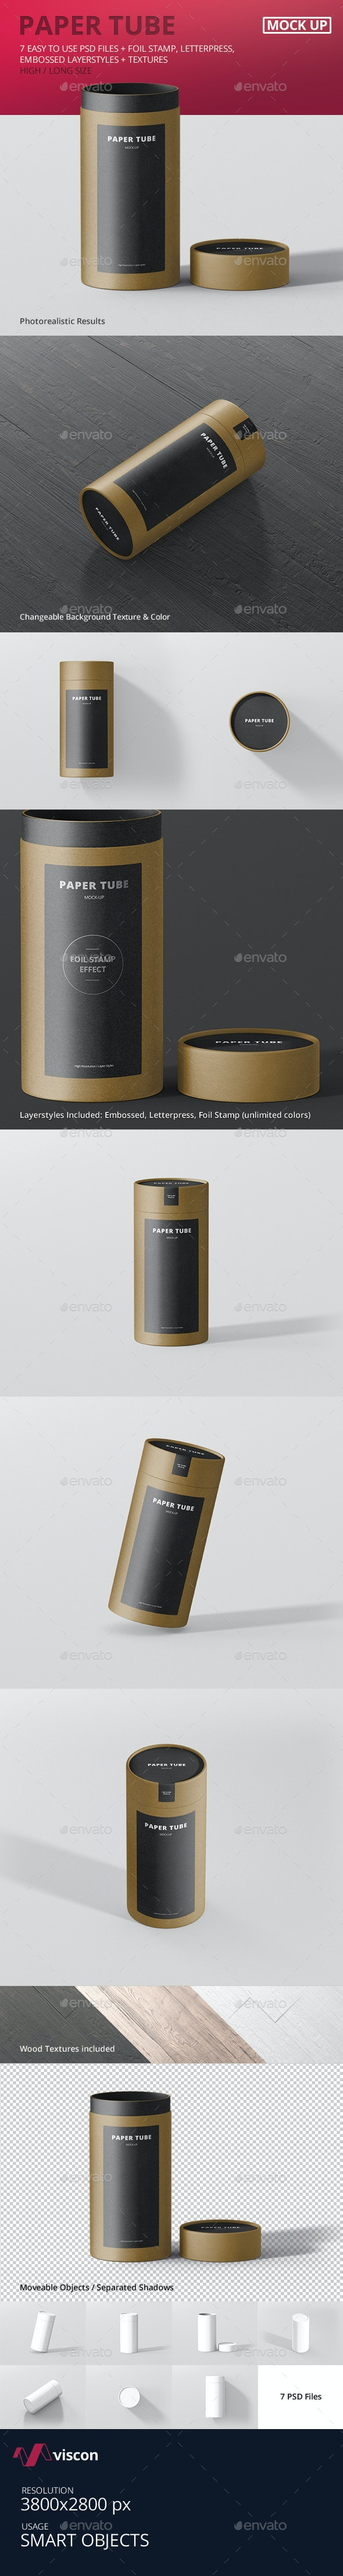 Paper Tube Packaging Mock-Up - Long / High - Miscellaneous Packaging